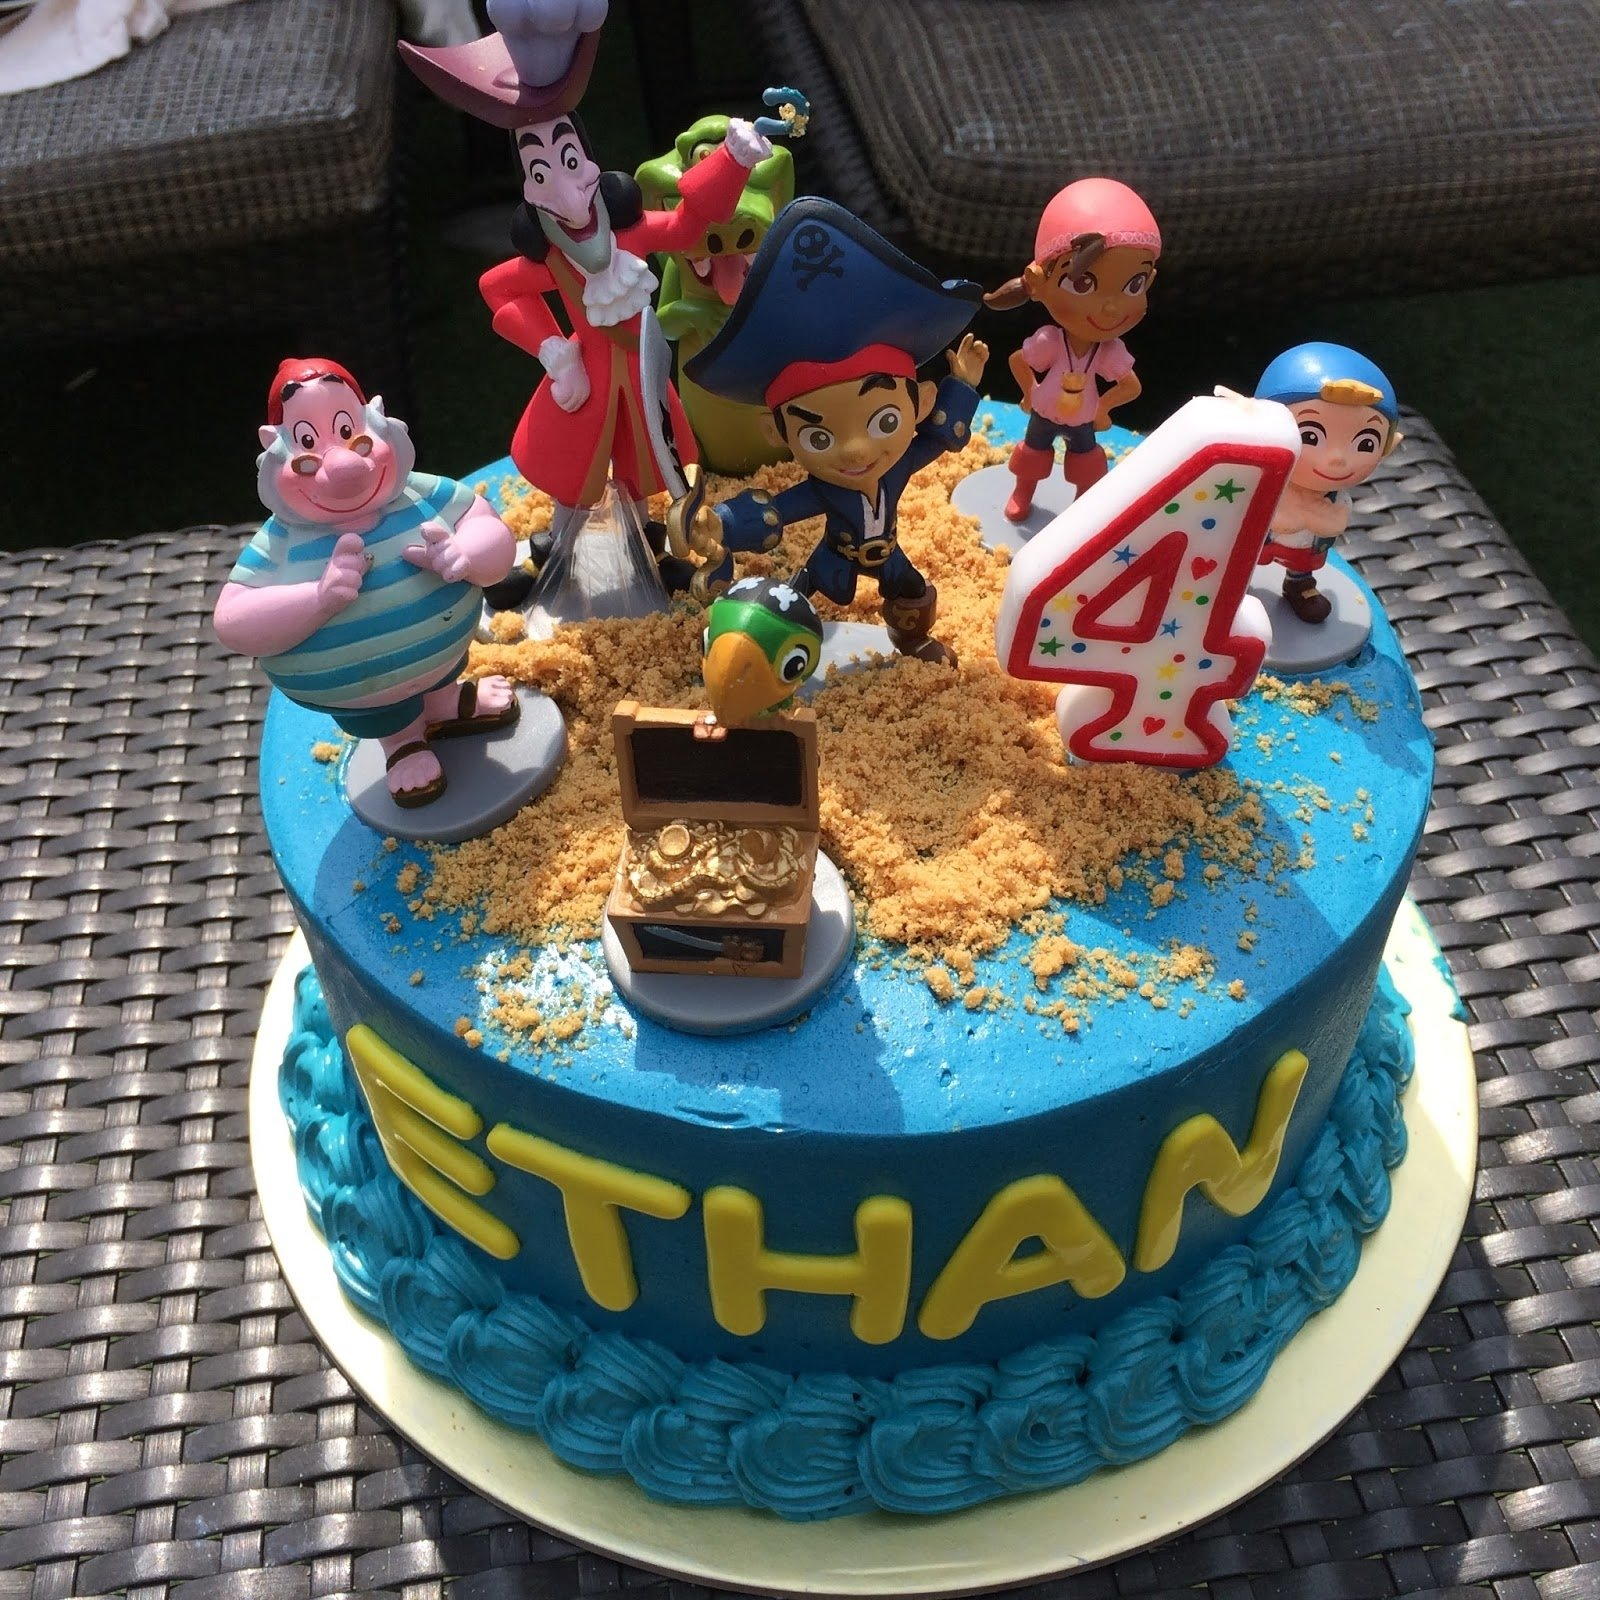 10 Lovable Jake And The Neverland Pirates Cake Ideas jake the neverland pirates cake crissas cake corner 2021